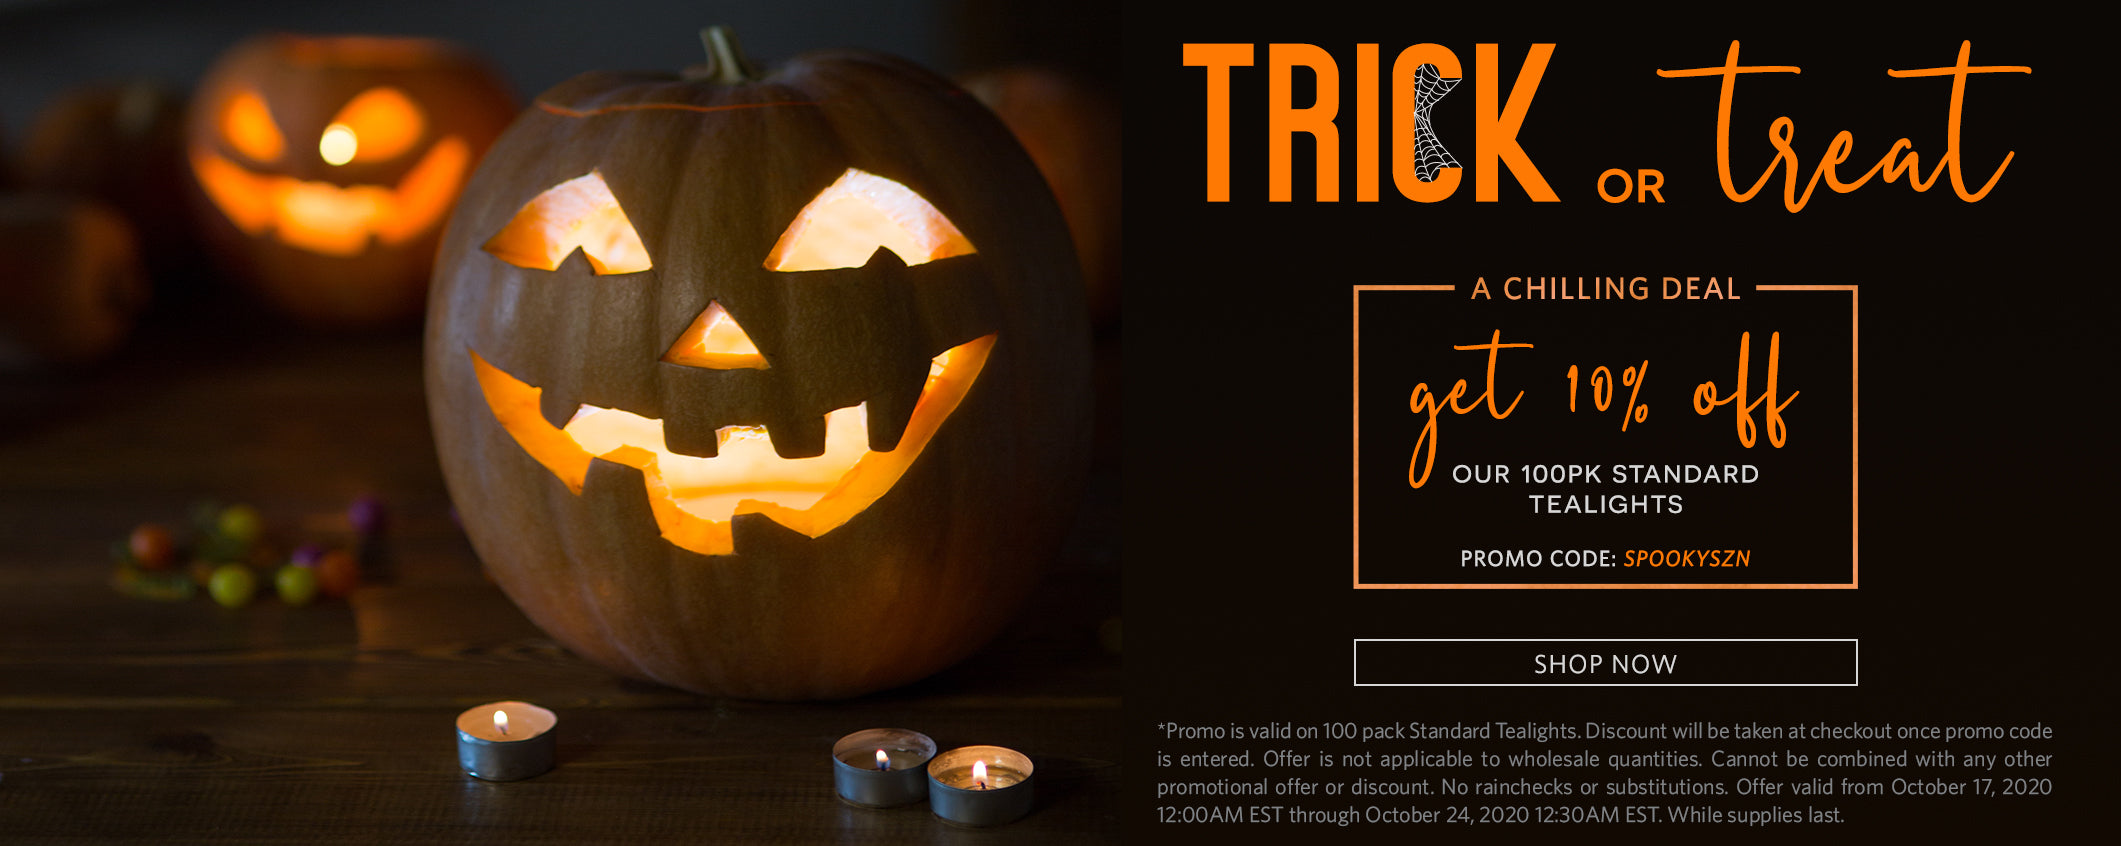 Trick or treat! A chilling deal, get 10% off our 100pk standard tealights. Promo code: SPOOKYSZN